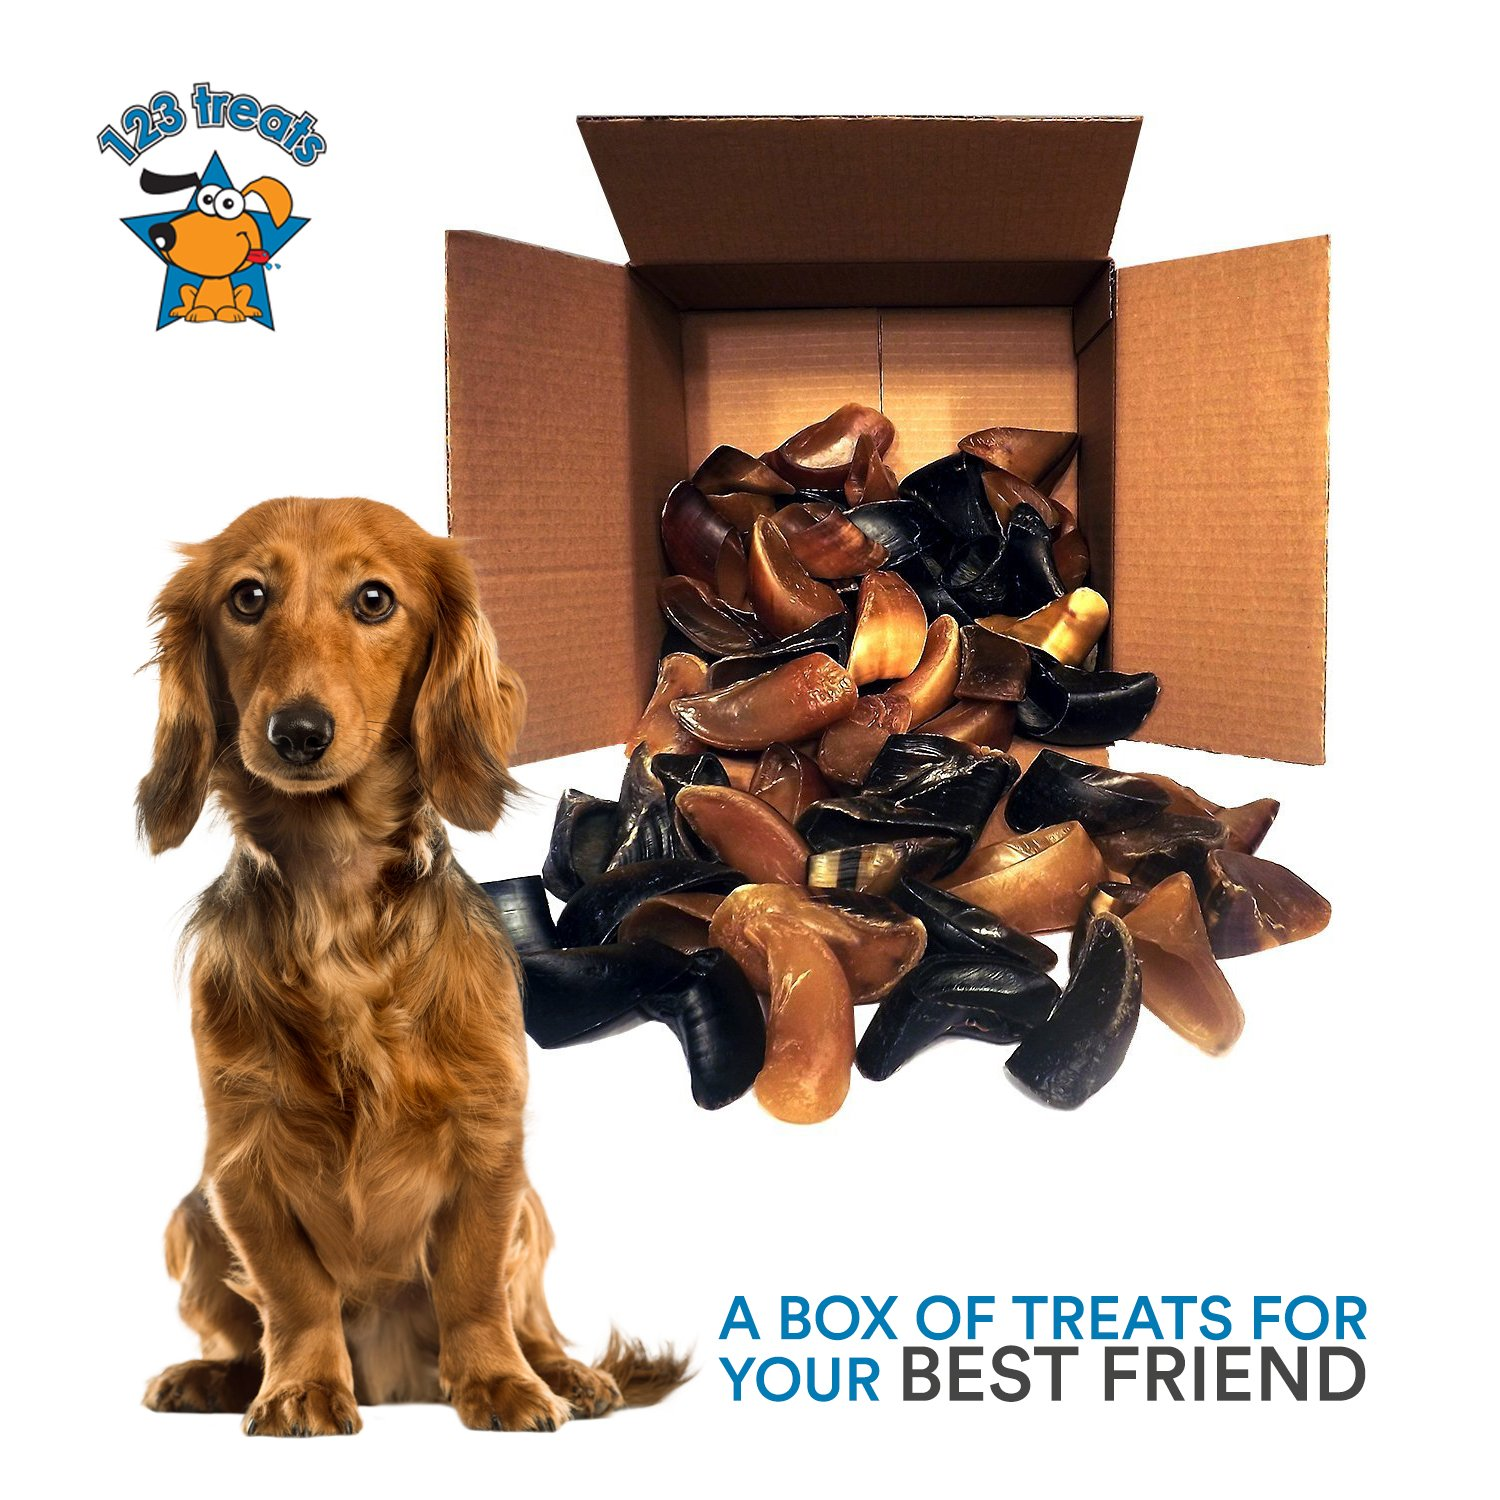 123 Treats | Hooves for Dogs (25 Count) 100% Natural Long-lasting Dental Dog Chews Made from Beef Hoof | From Free Range, Grass Fed Cattle with NO additives, coloring or chemicals by 123 Treats (Image #6)